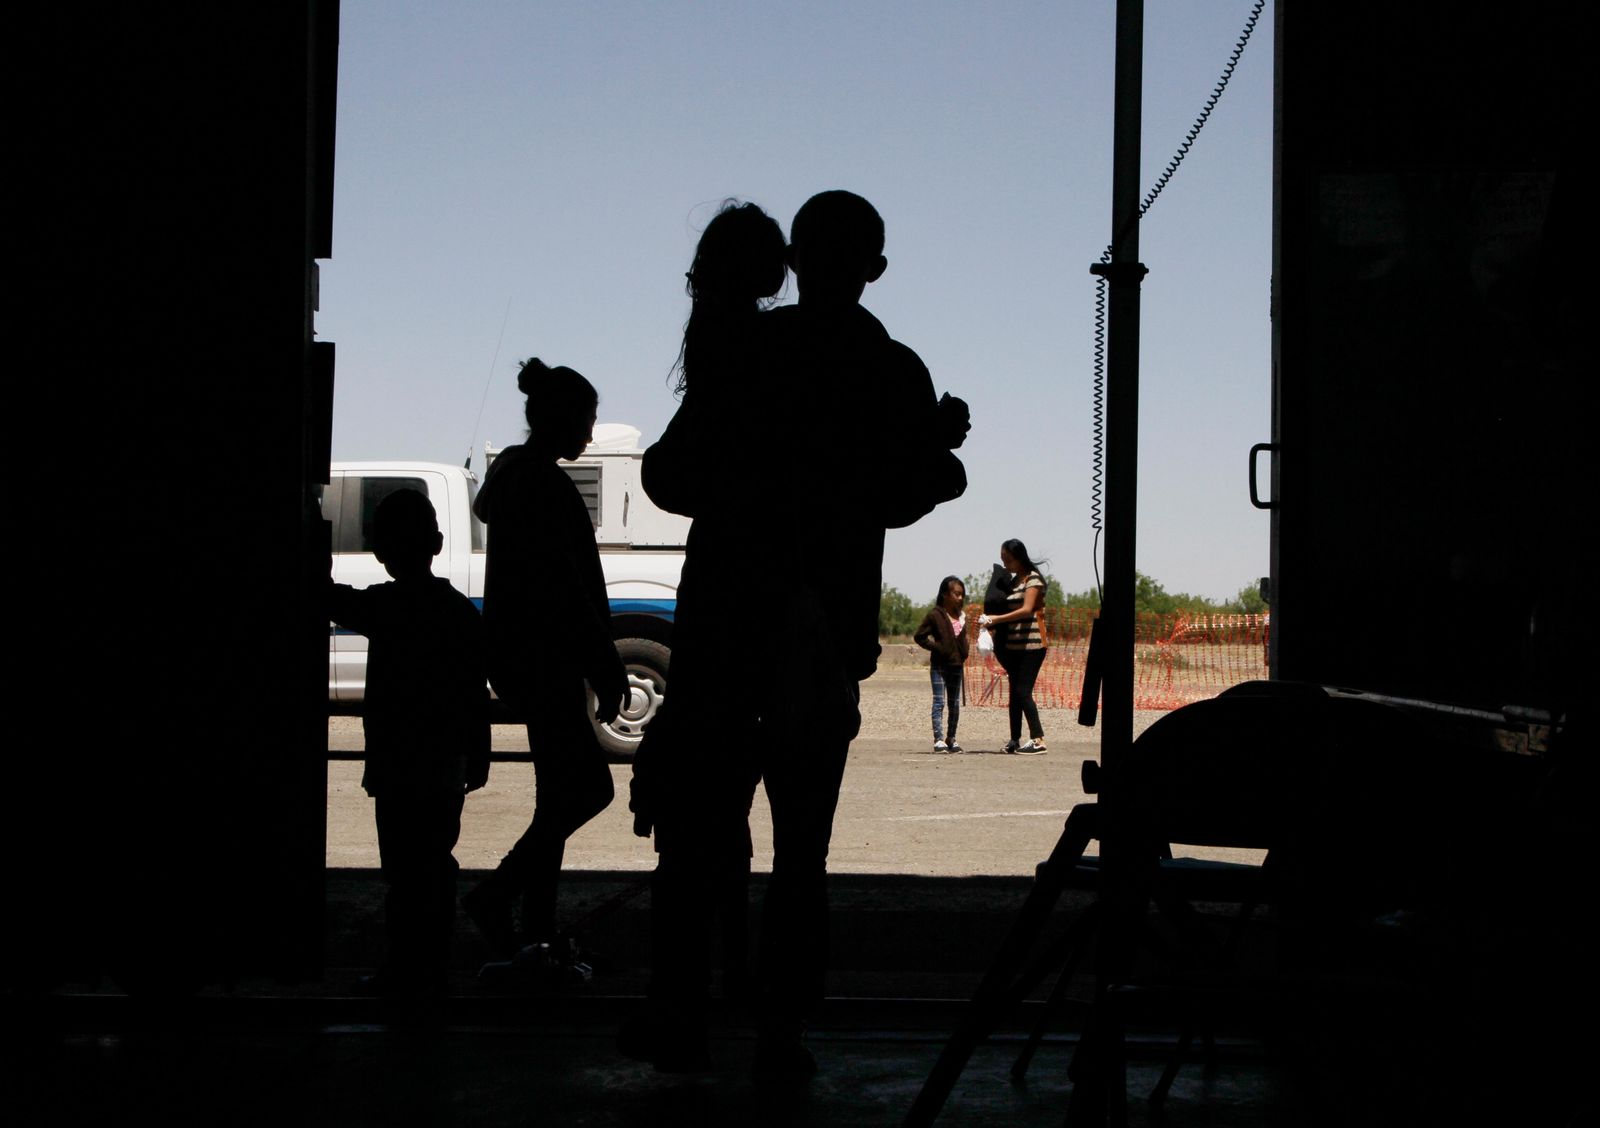 FILE - In this Wednesday, May 22, 2019 file photo migrants mainly from Central America guide their children through the entrance of a World War II-era bomber hanger in Deming, N.M. (AP Photo/Cedar Attanasio, File)